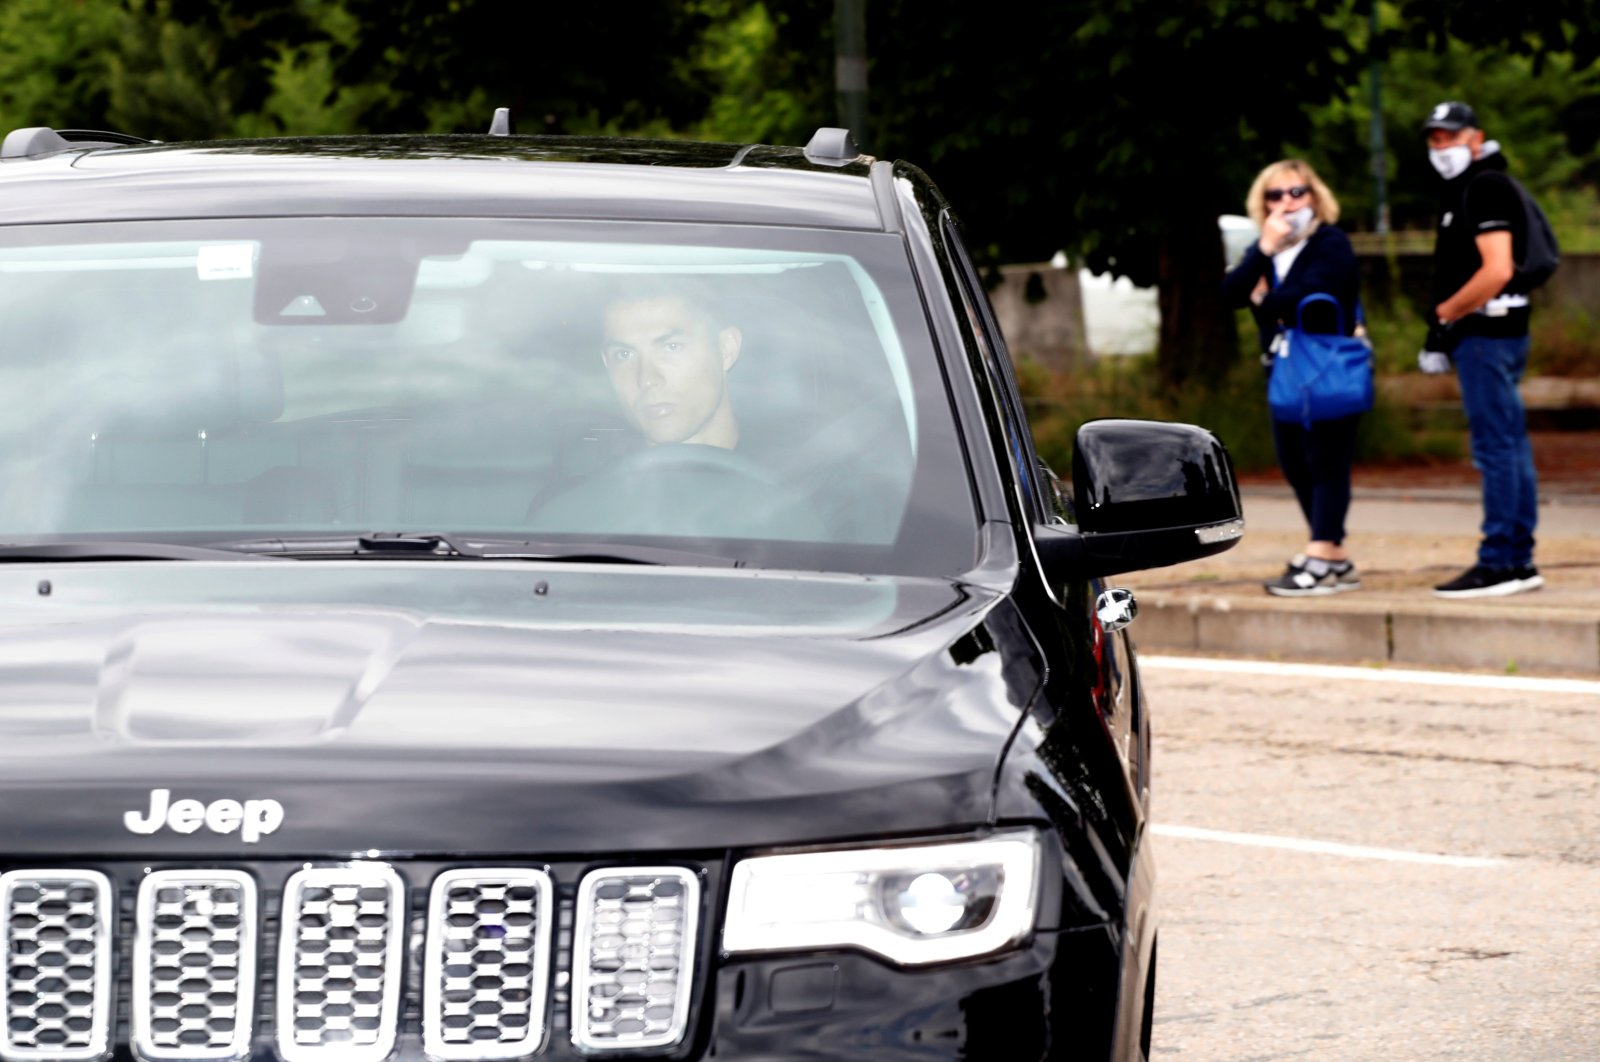 Cristiano Ronaldo arrives at Juventus Training Center, in Turin, Italy, May 19, 2020. (REUTERS Photo)